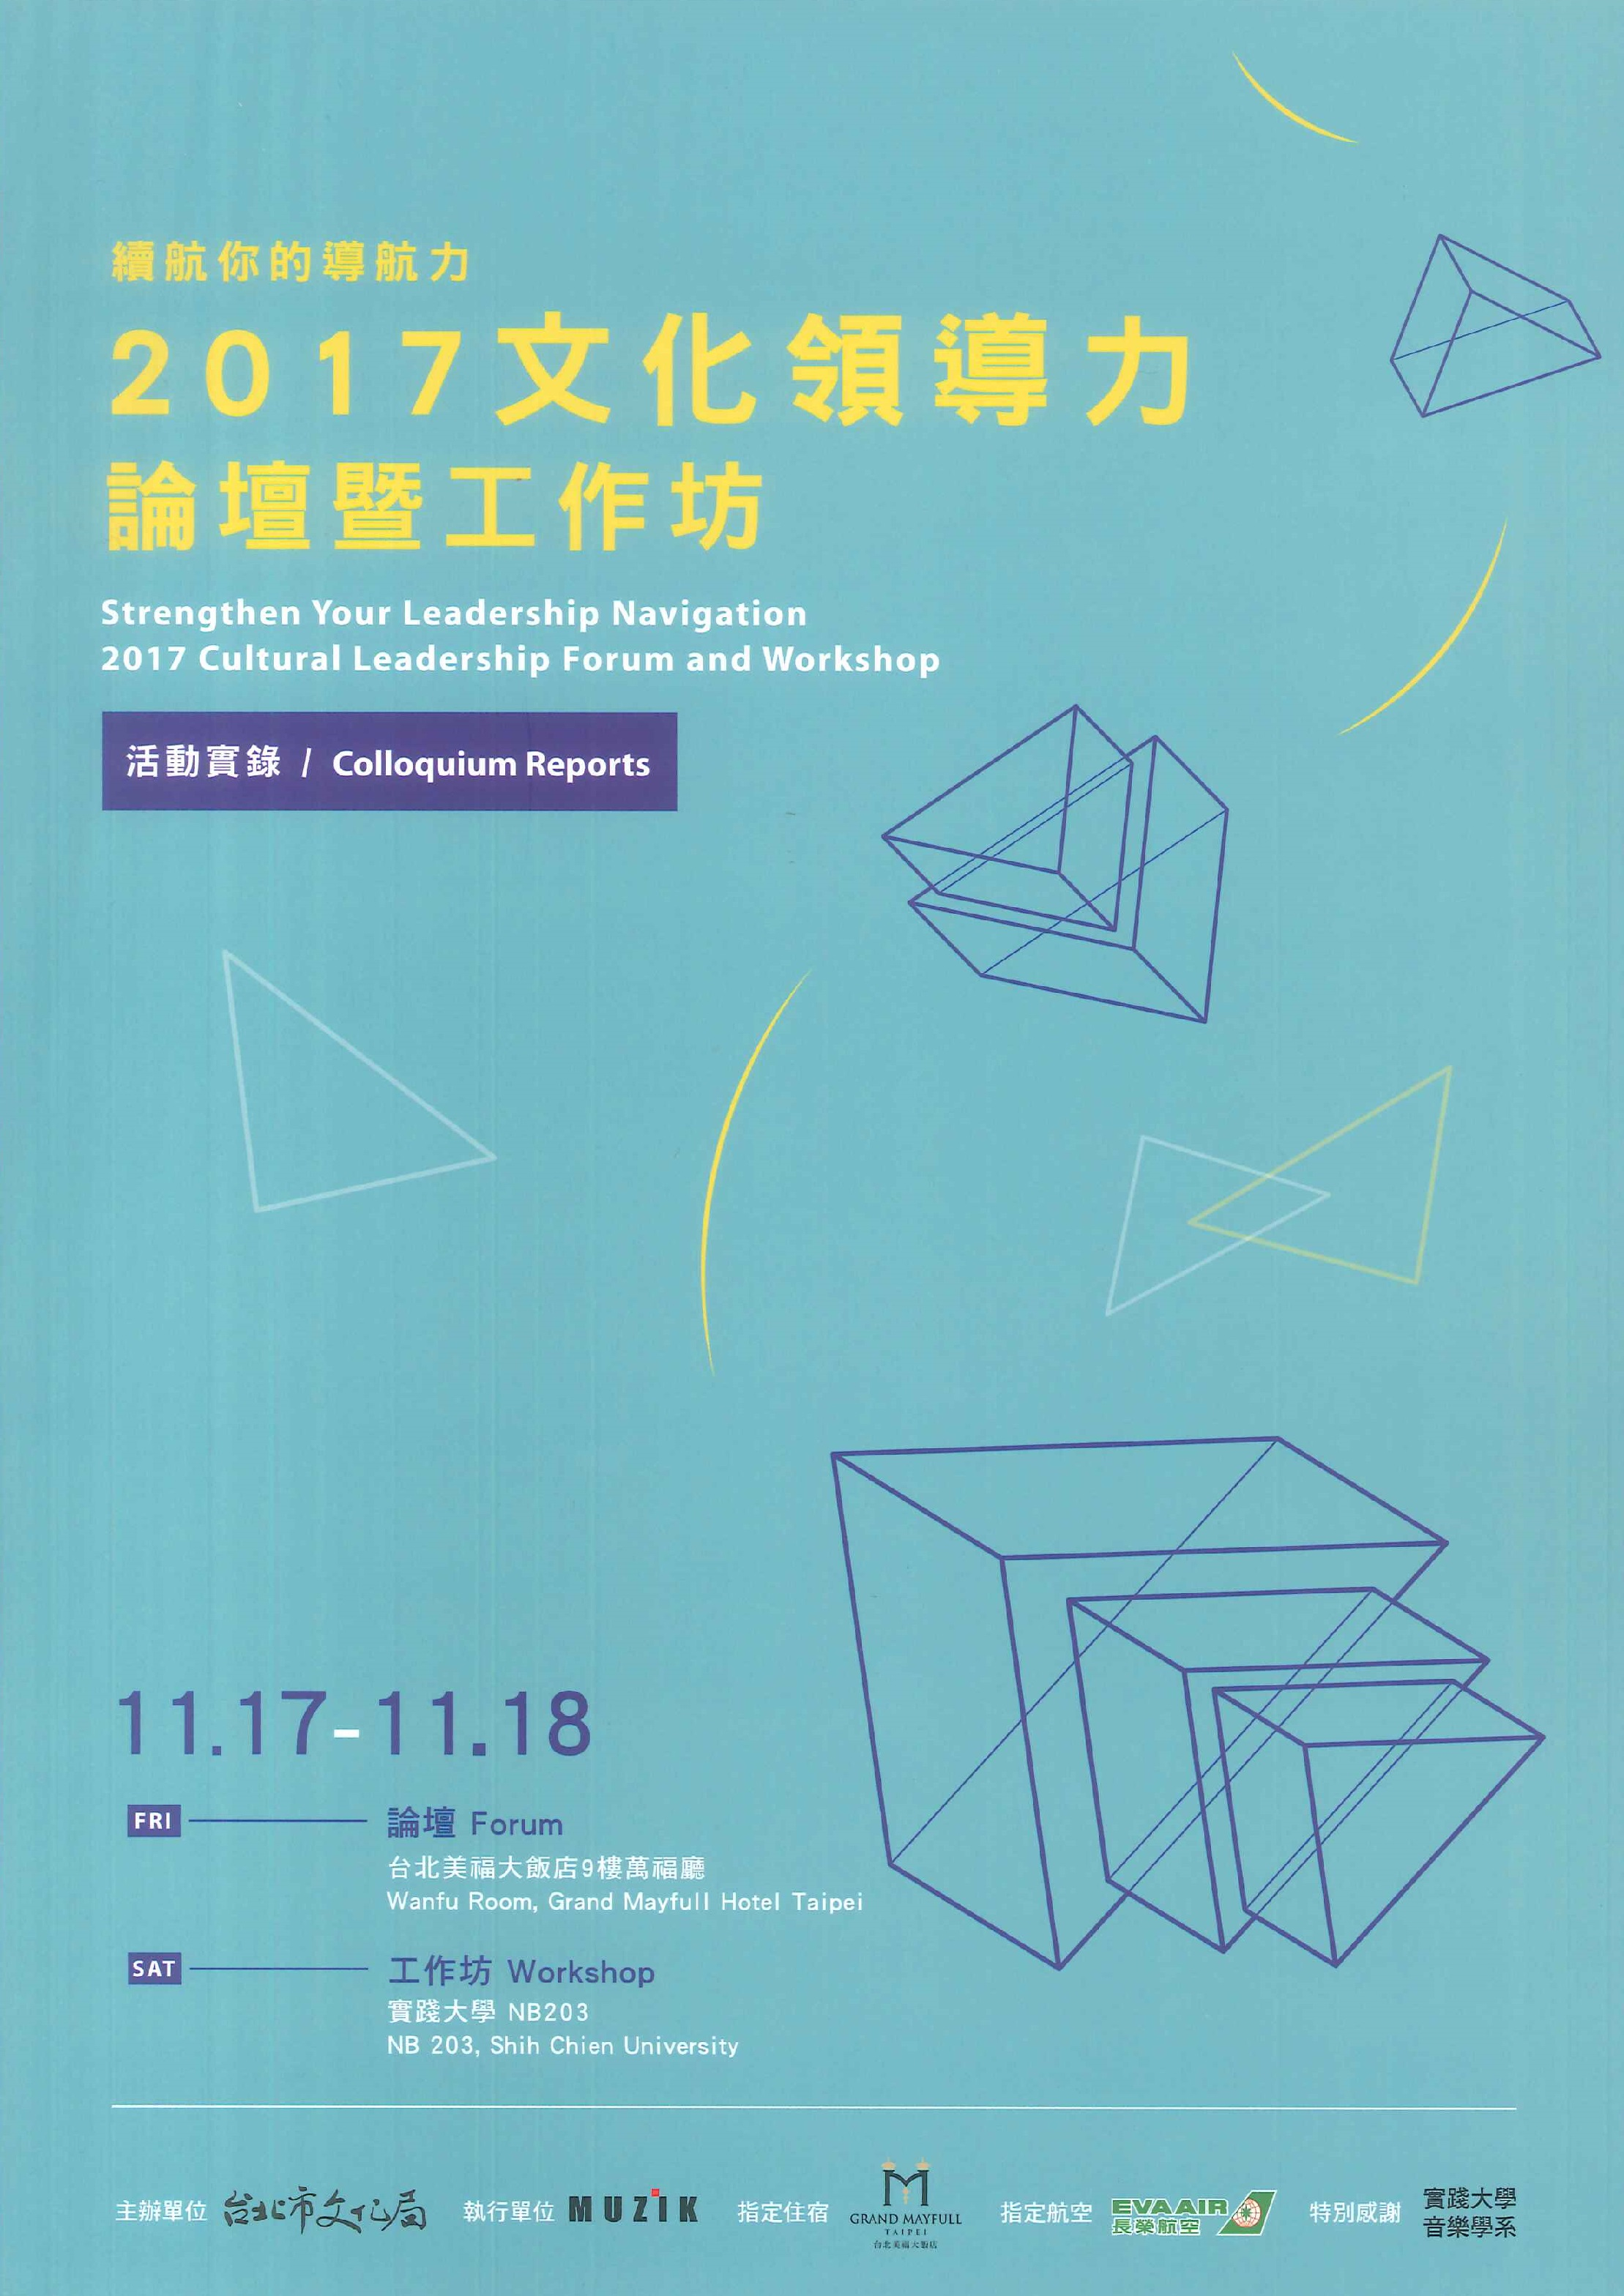 續航你的導航力:2017文化領導力論壇暨工作坊=Strengthen your leadership navigation: 2017 cultural leadership forum and workshop: colloquium reports:活動實錄